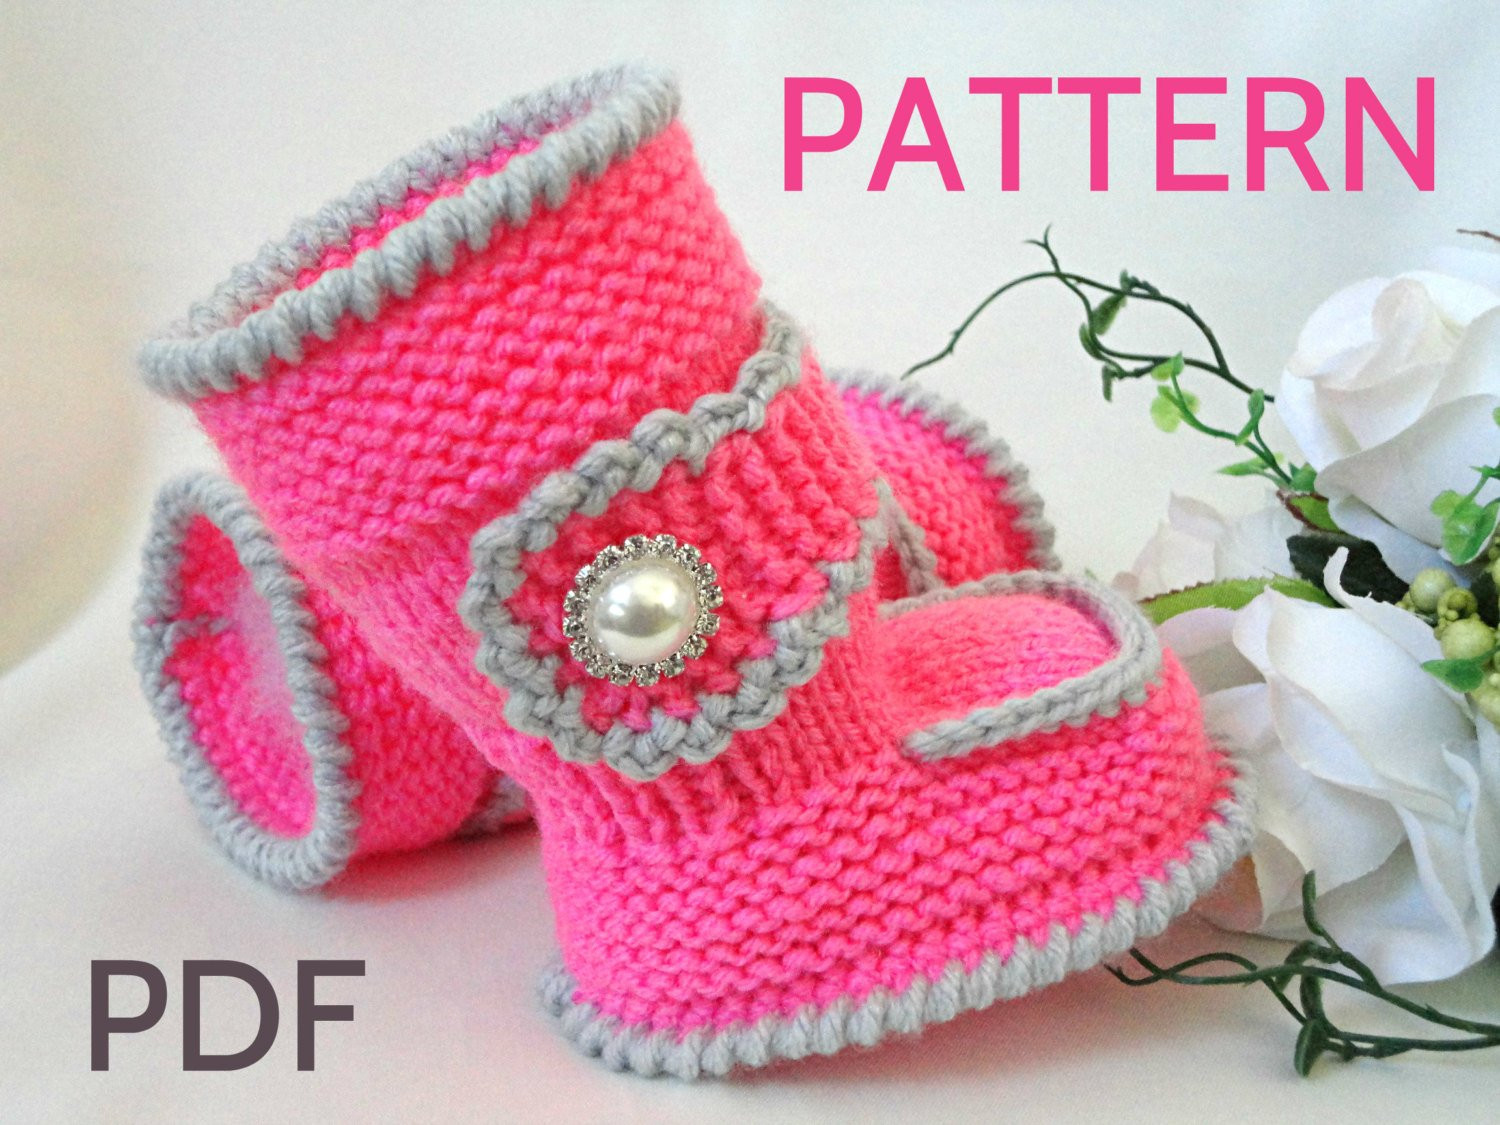 New Baby Booties Knitting Pattern Ugg Boots Baby Booties Knitting Pattern Of Awesome 47 Pics Baby Booties Knitting Pattern